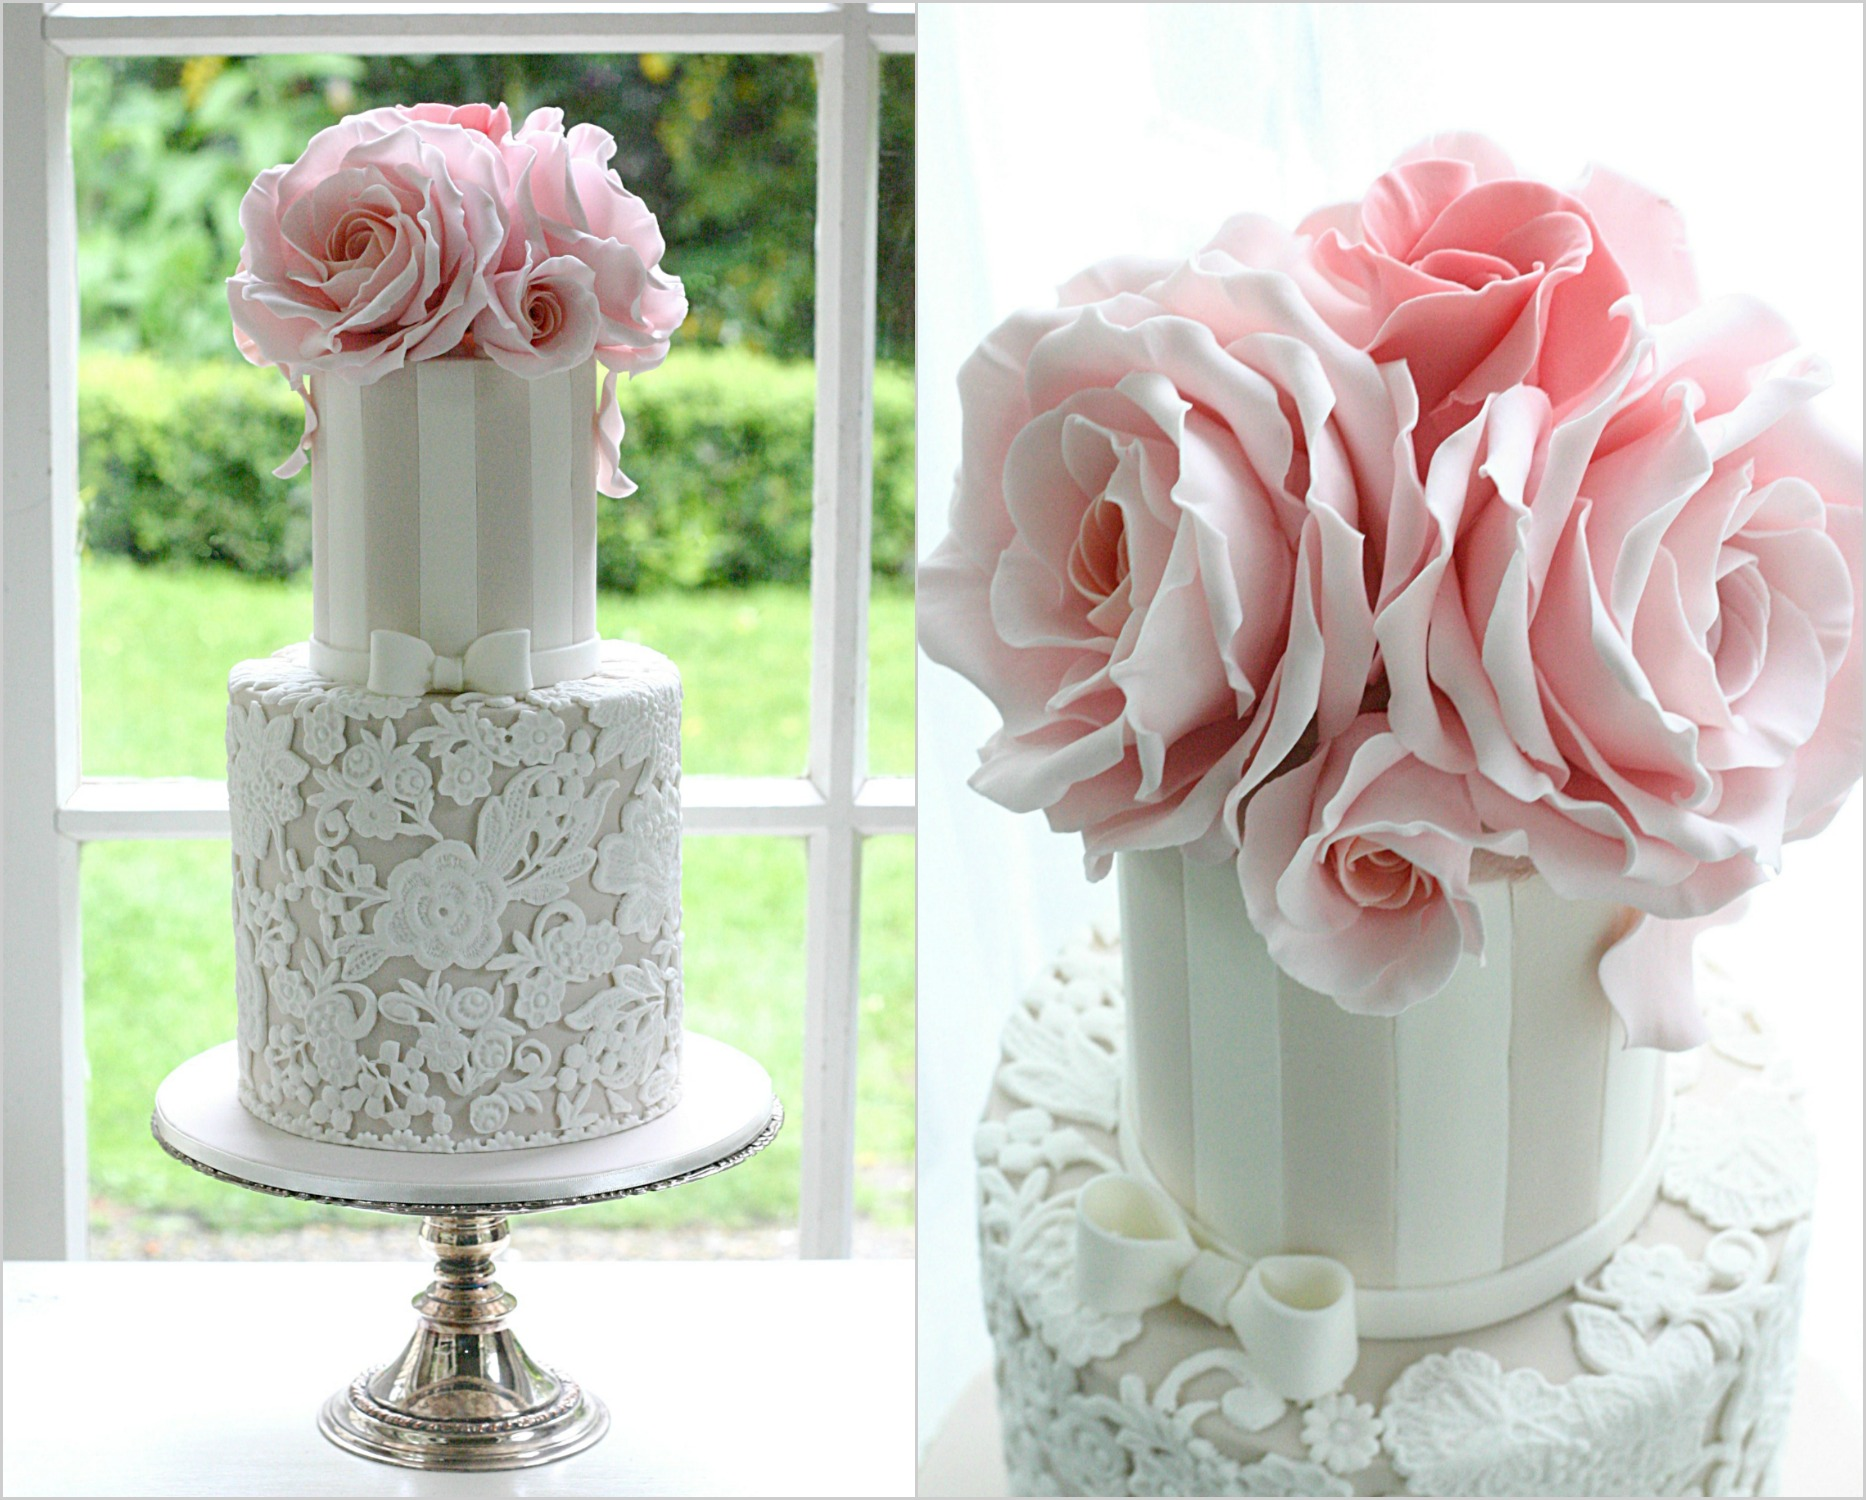 Lace wedding cake peach roses